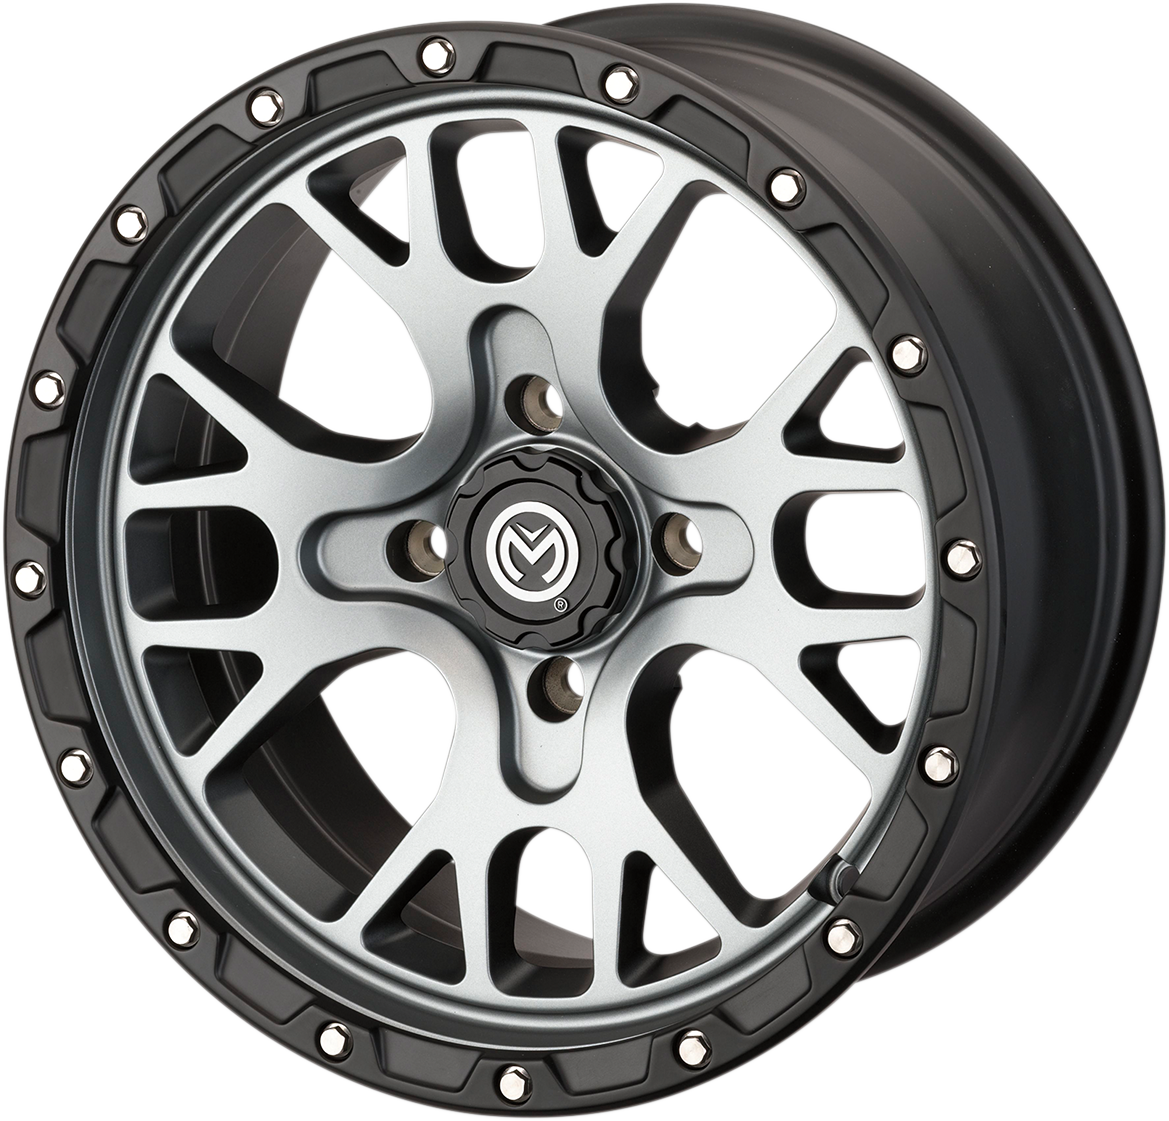 Moose 14x7 4/156 5+2 545X Satin Gray & Black Rocker vannesarja Polaris